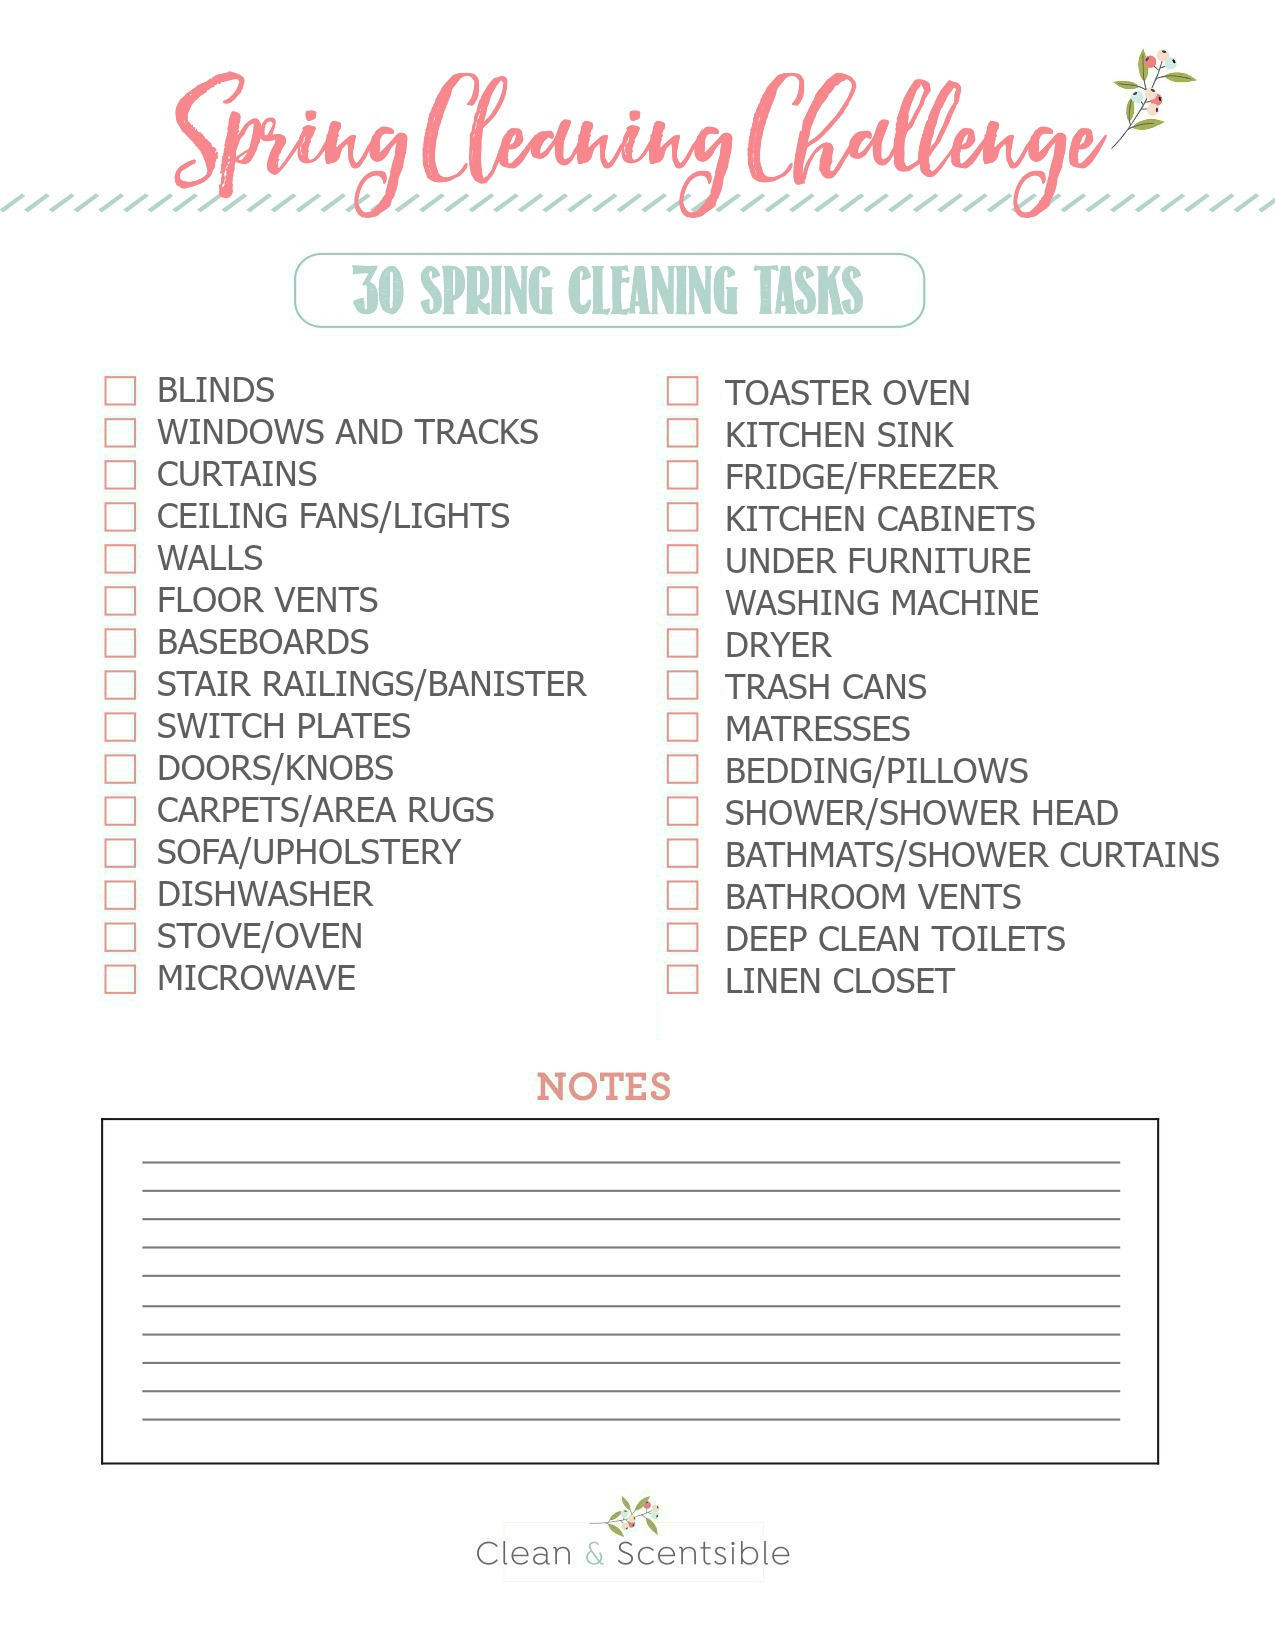 Free printable spring cleaning challenge checklist.